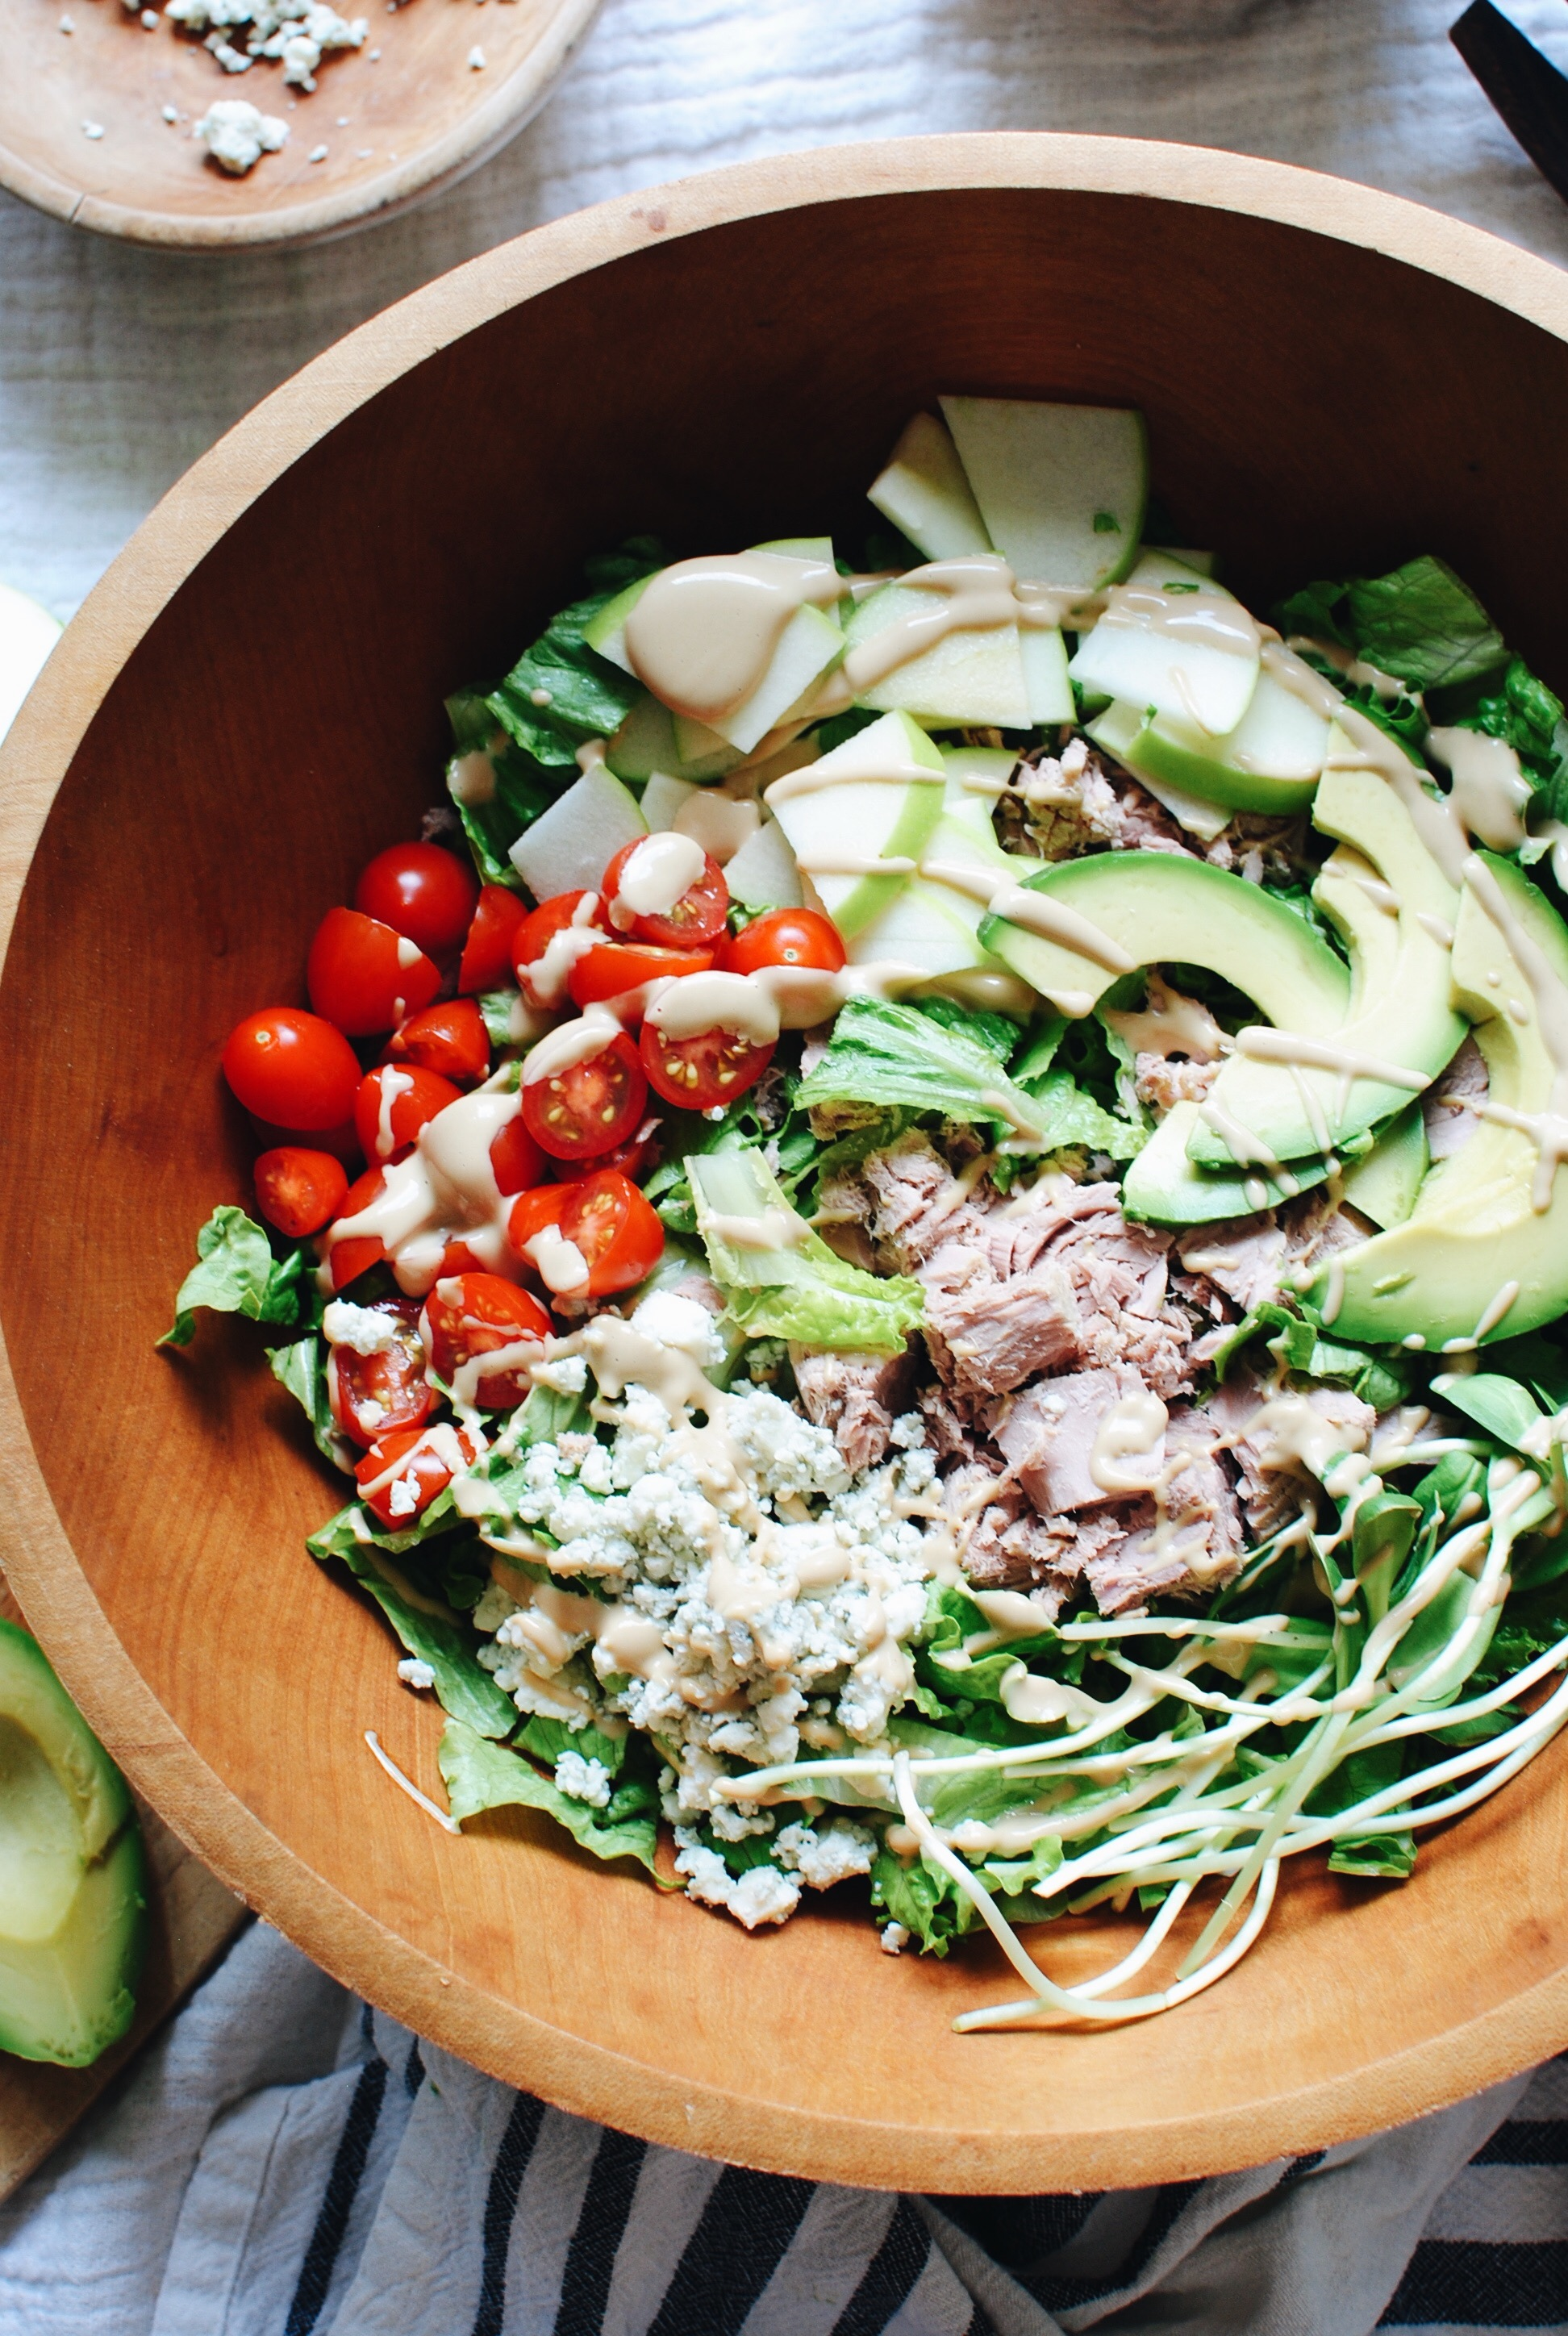 Greens Salad with Veggies, Tuna and Sunflower Butter Dressing / Bev Cooks